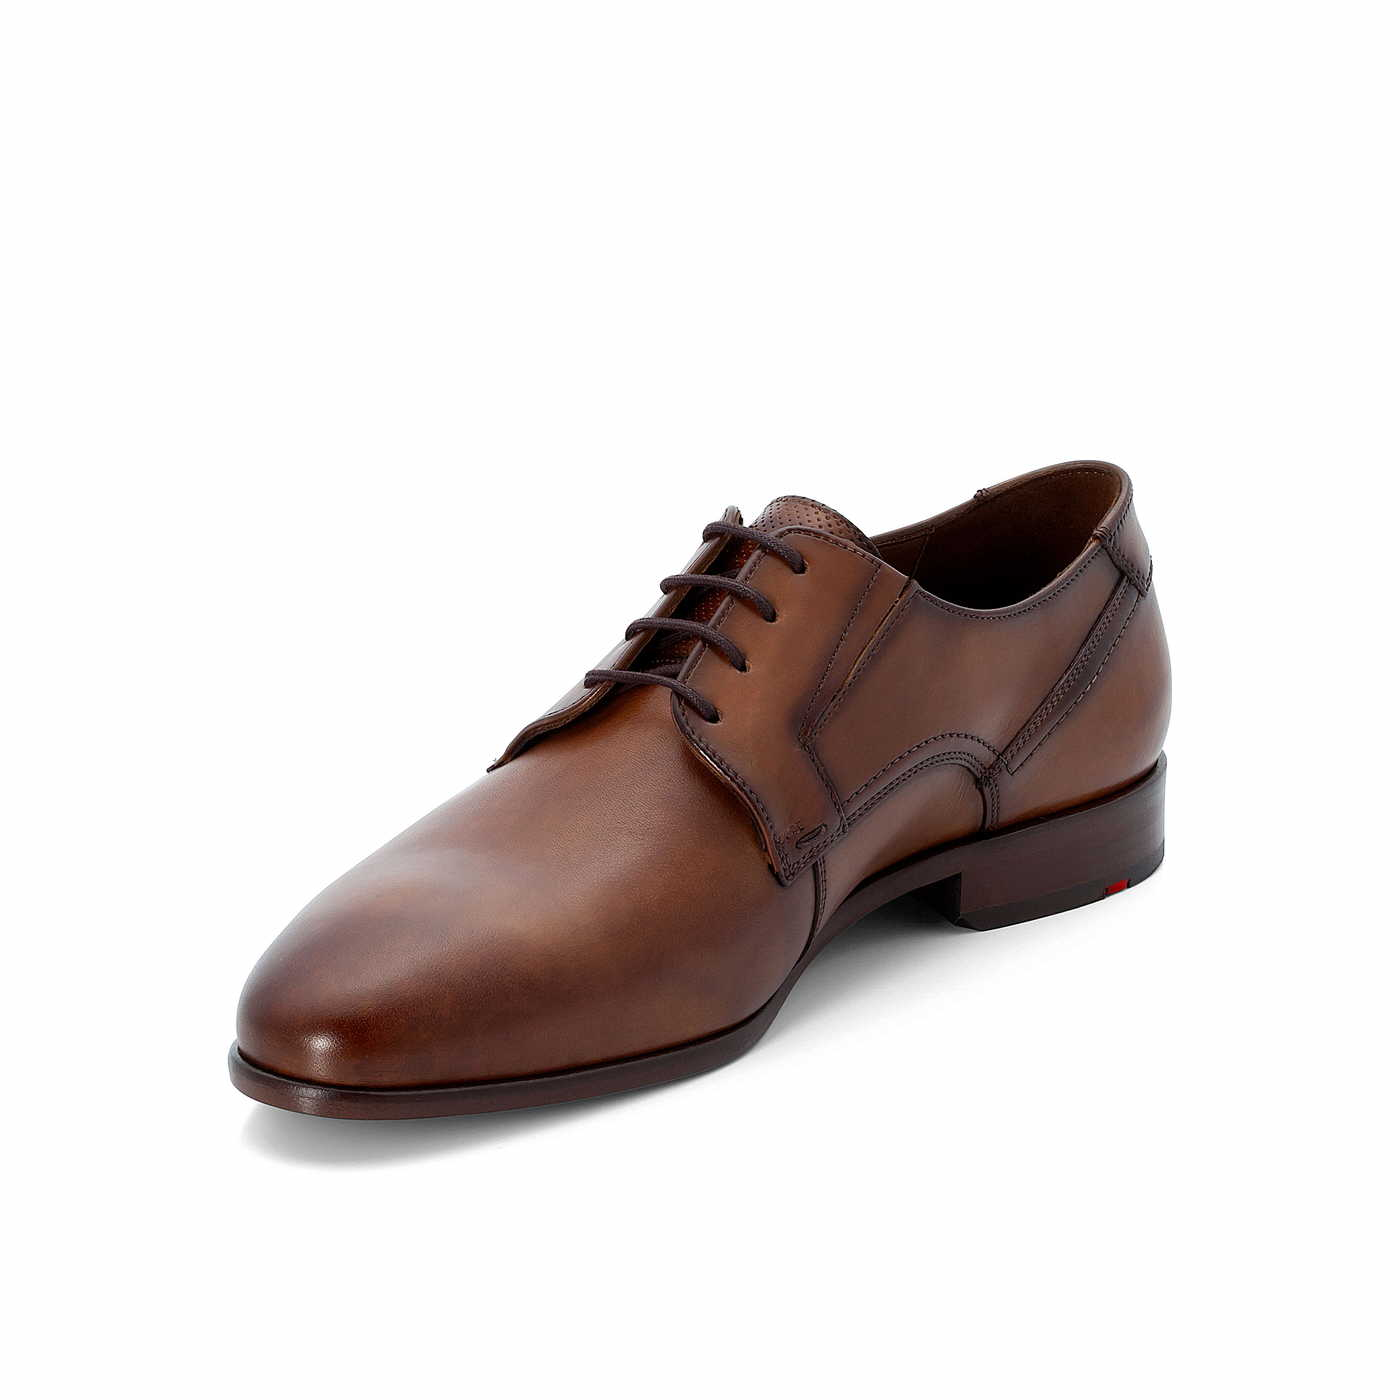 Herren Lloyd Business Schuhe braun KEEP 44,5